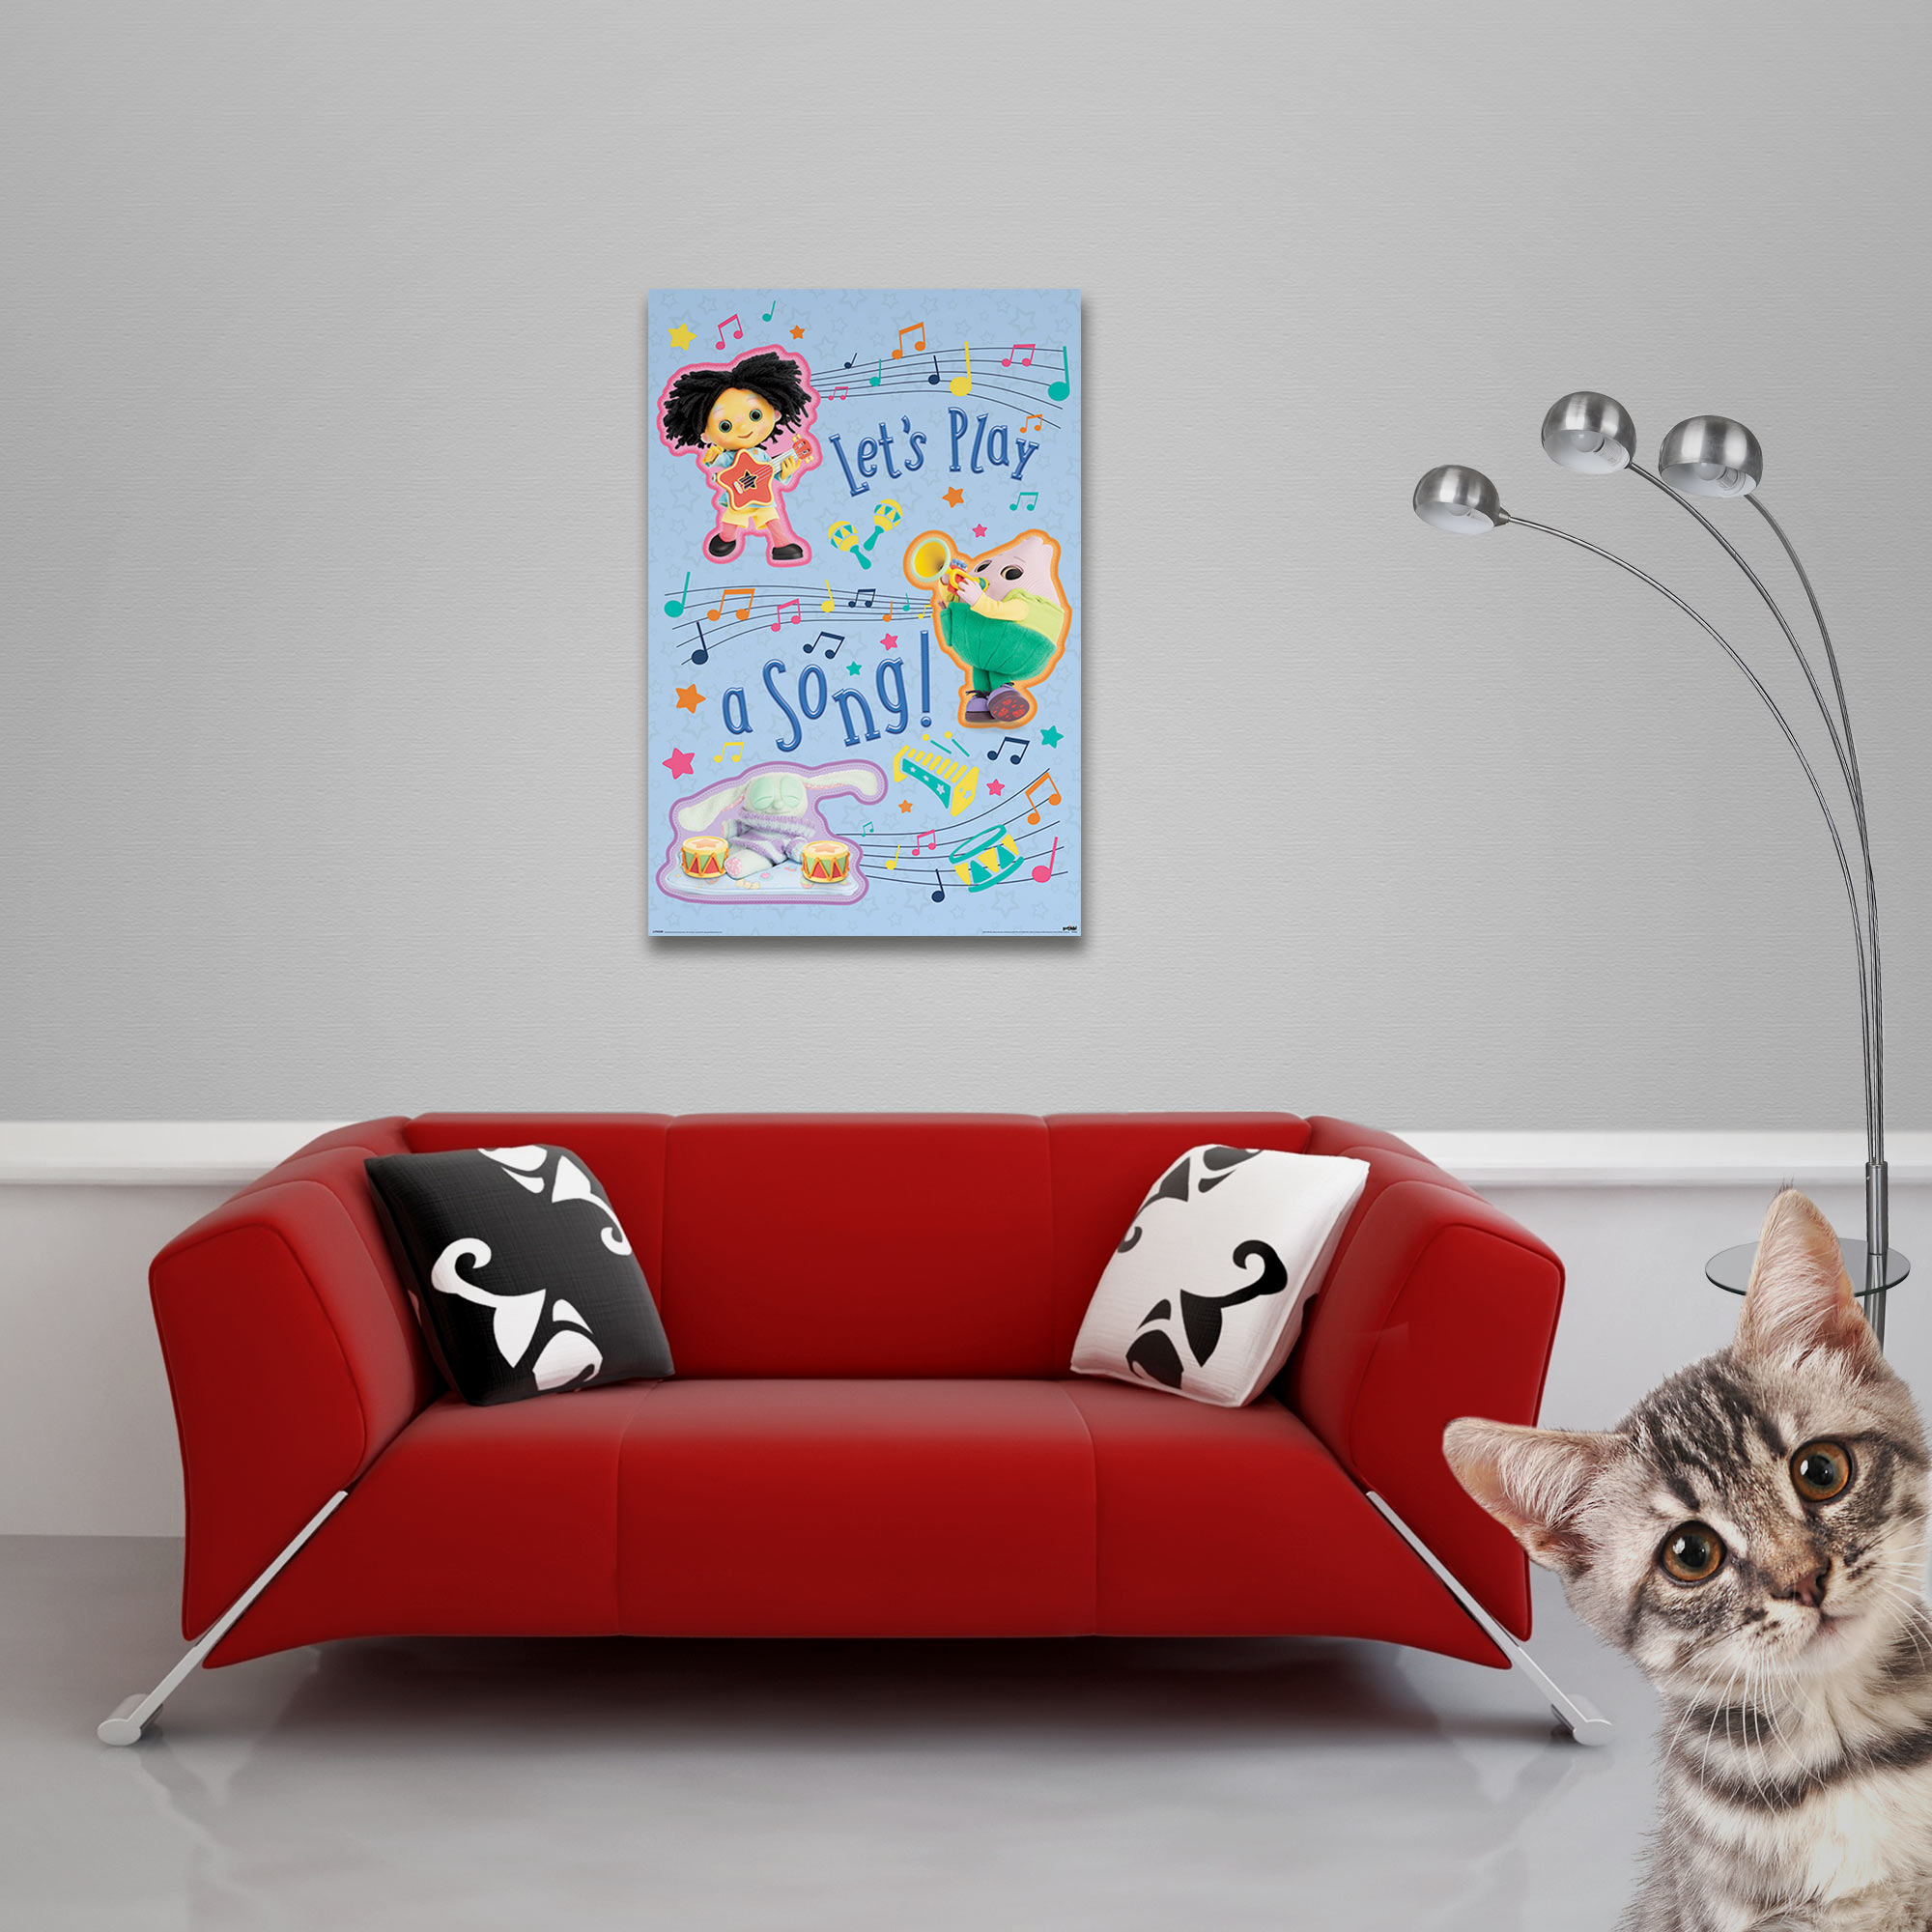 Moon and Me - Poster - Let's Play Vorschau Sofa